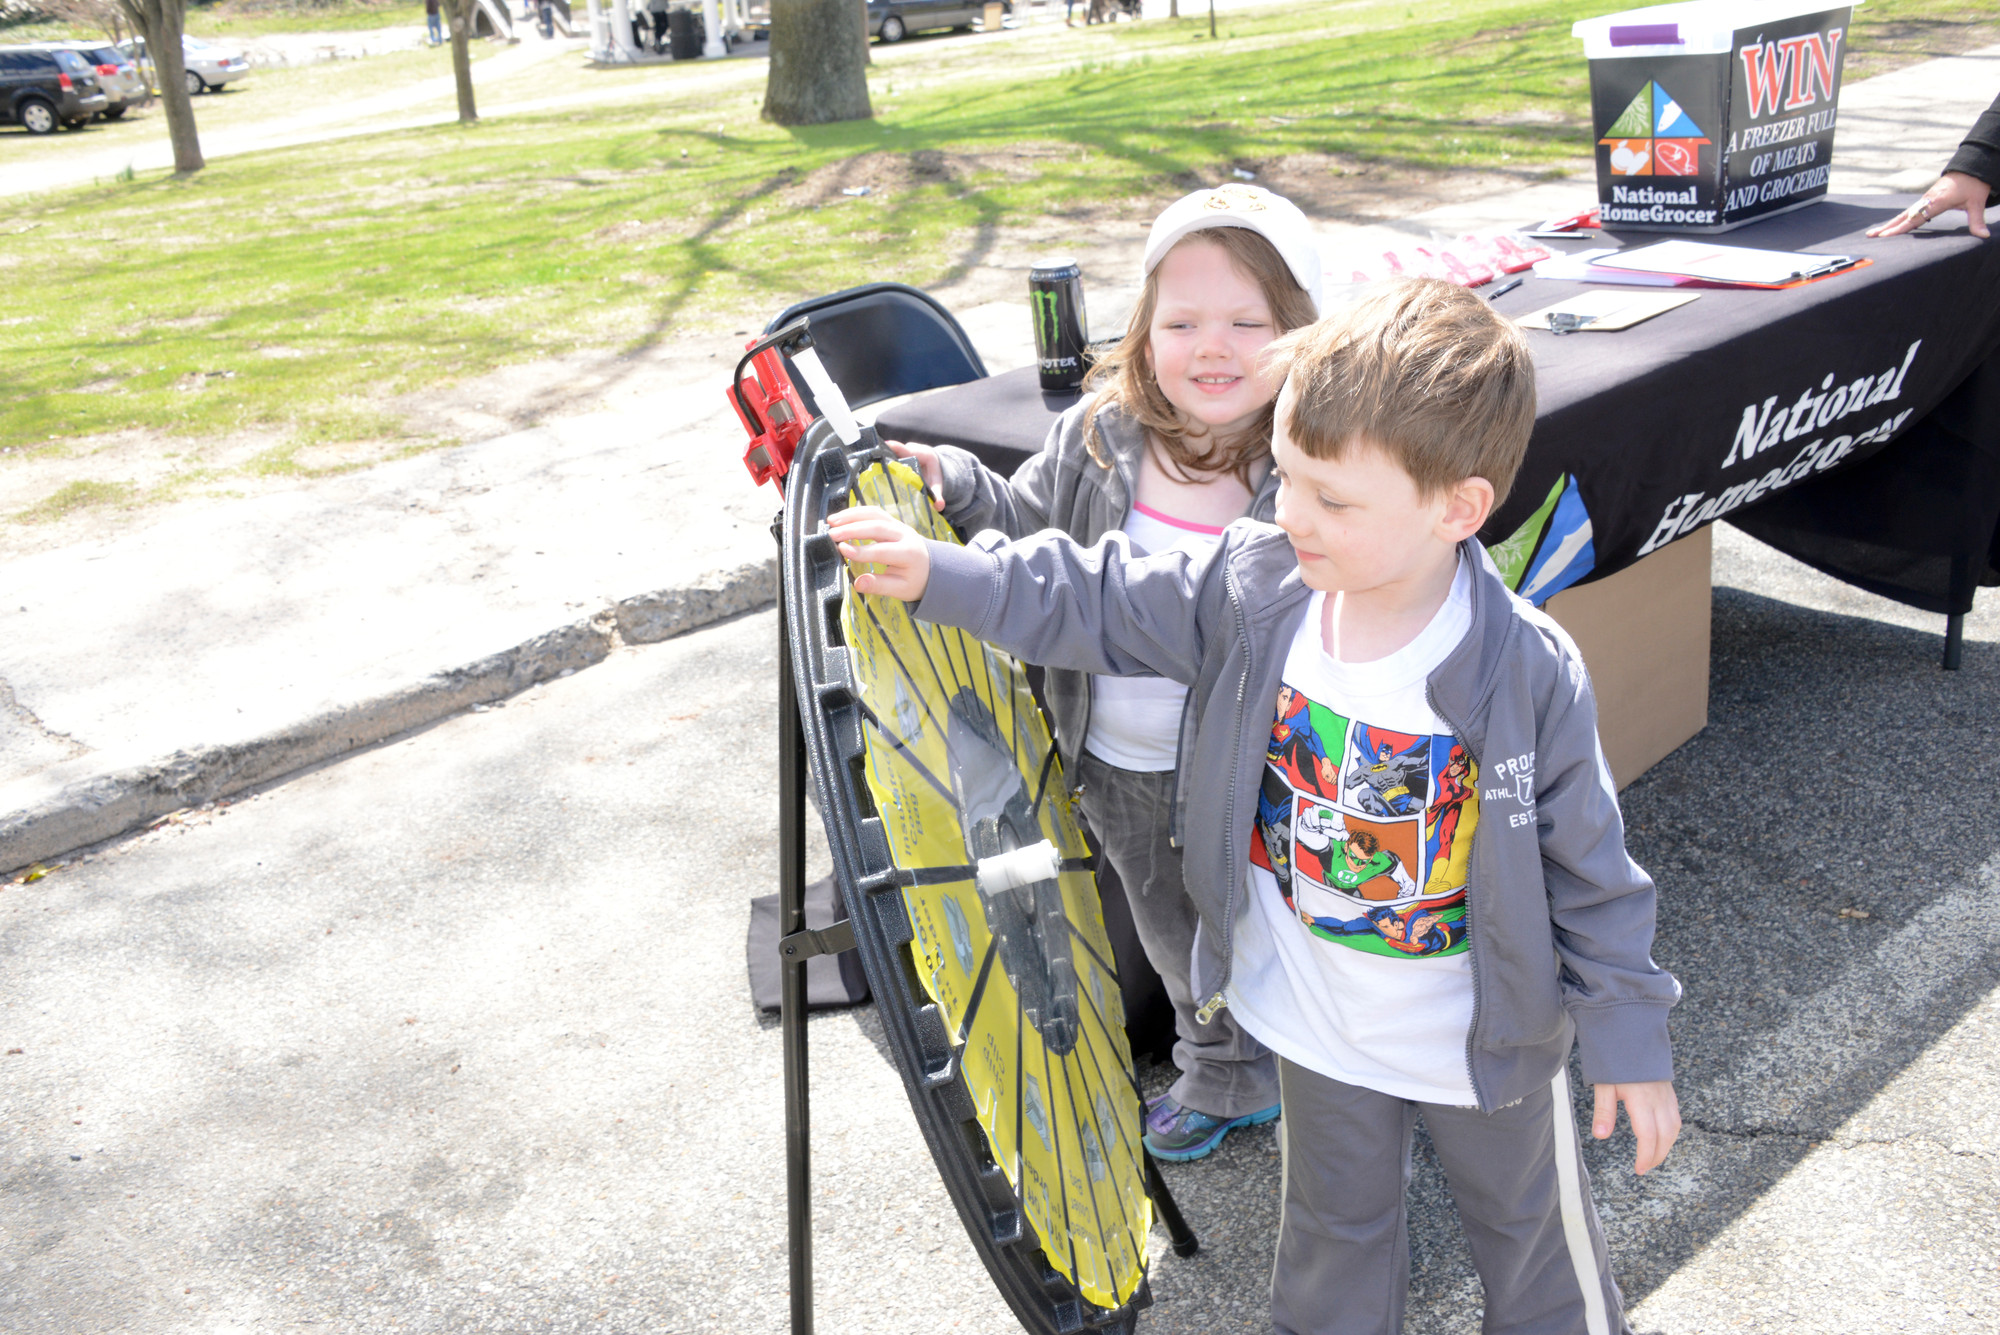 Eibhlin and Thomas Moriarty spun a wheel for a prize at this year's fair.